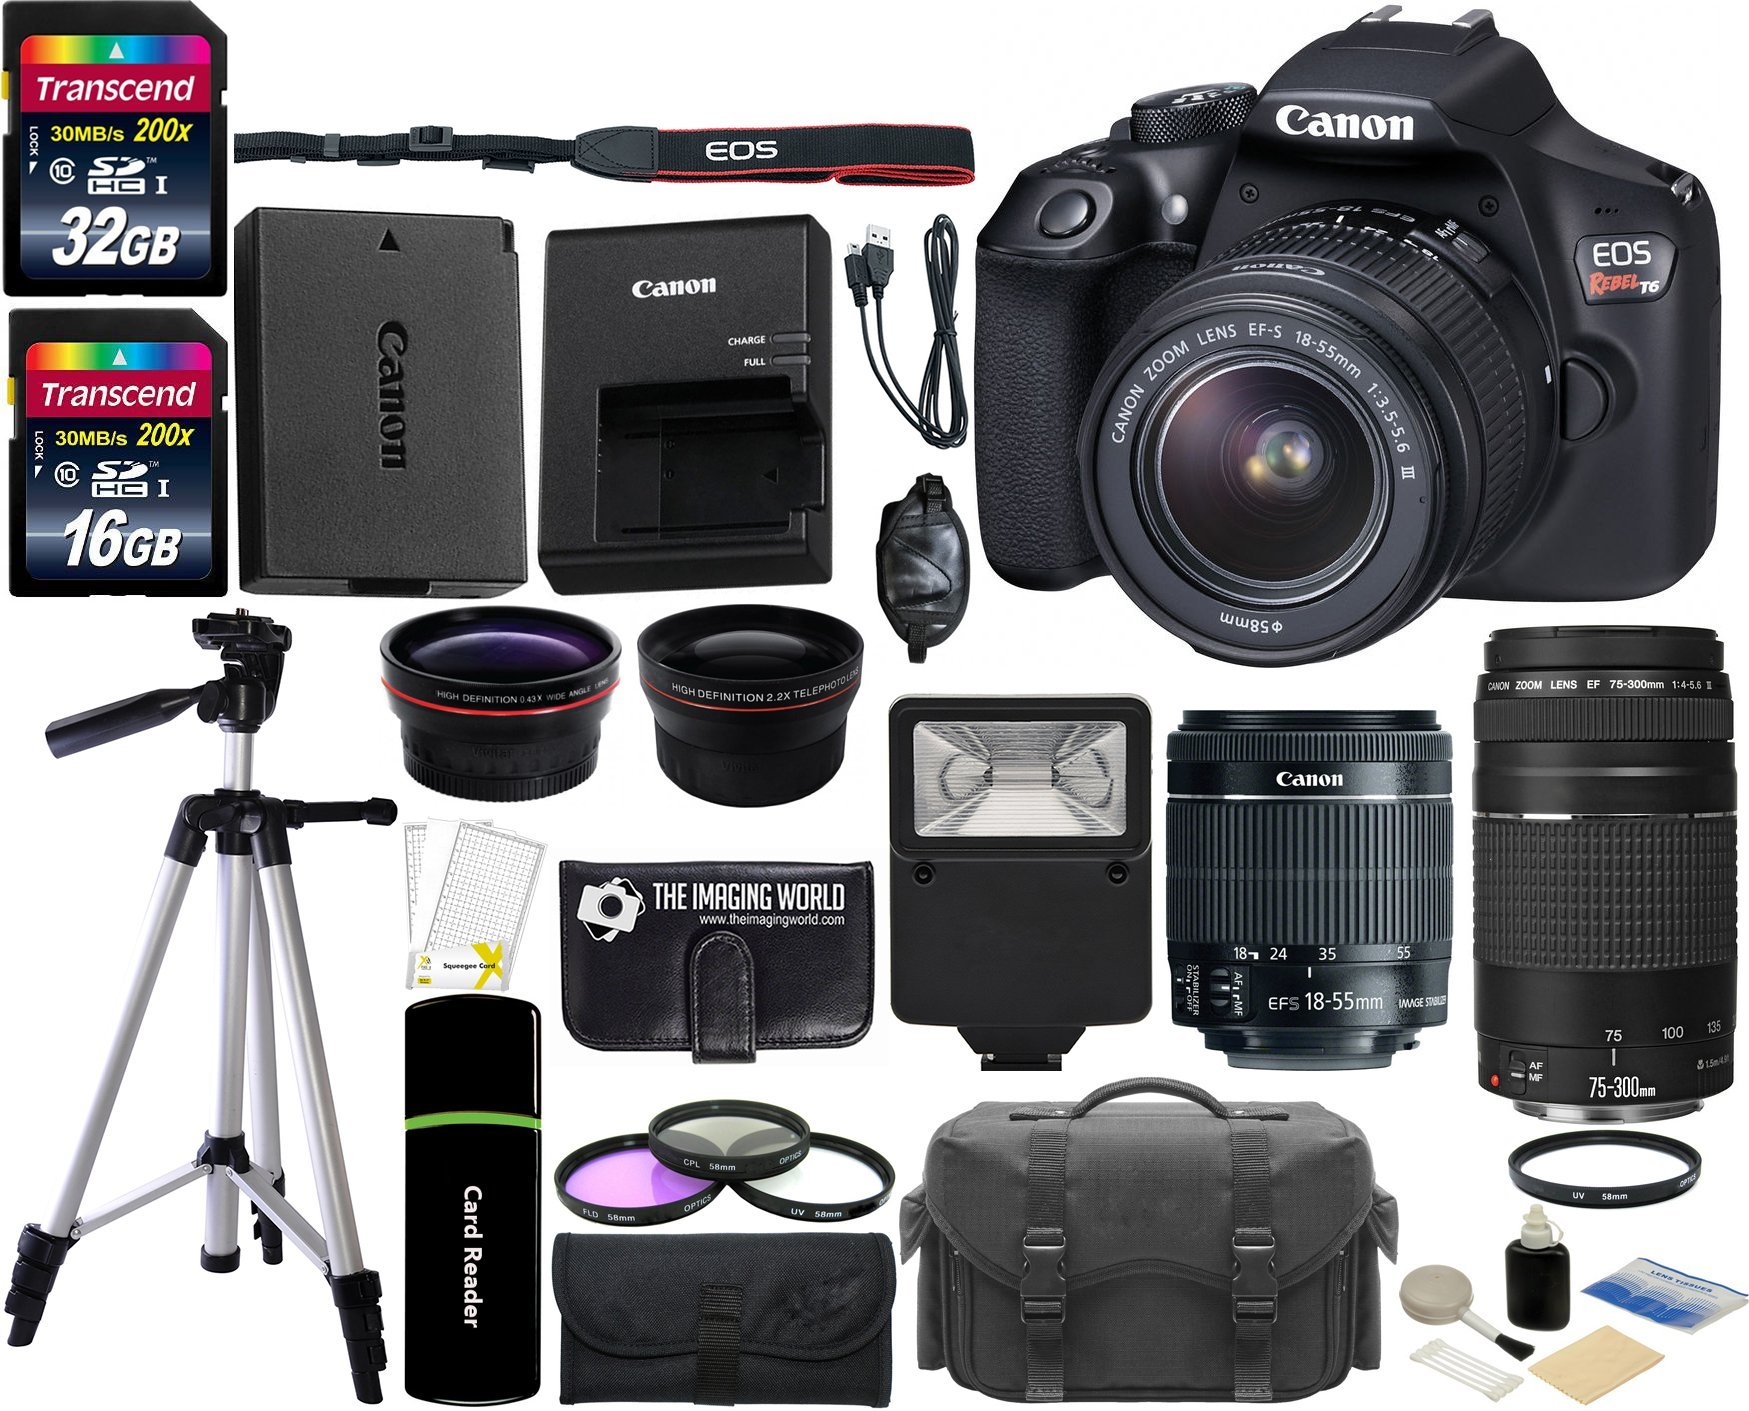 Canon EOS Rebel T6 18MP Wi-Fi DSLR Camera with 18-55mm IS II Lens + EF 75-300mm III Lens + 32GB & 16GB Card + Wide Angle Lens + Telephoto Lens + Flash + Grip + Tripod - 48GB Deluxe Accessories Bundle by The Imaging World